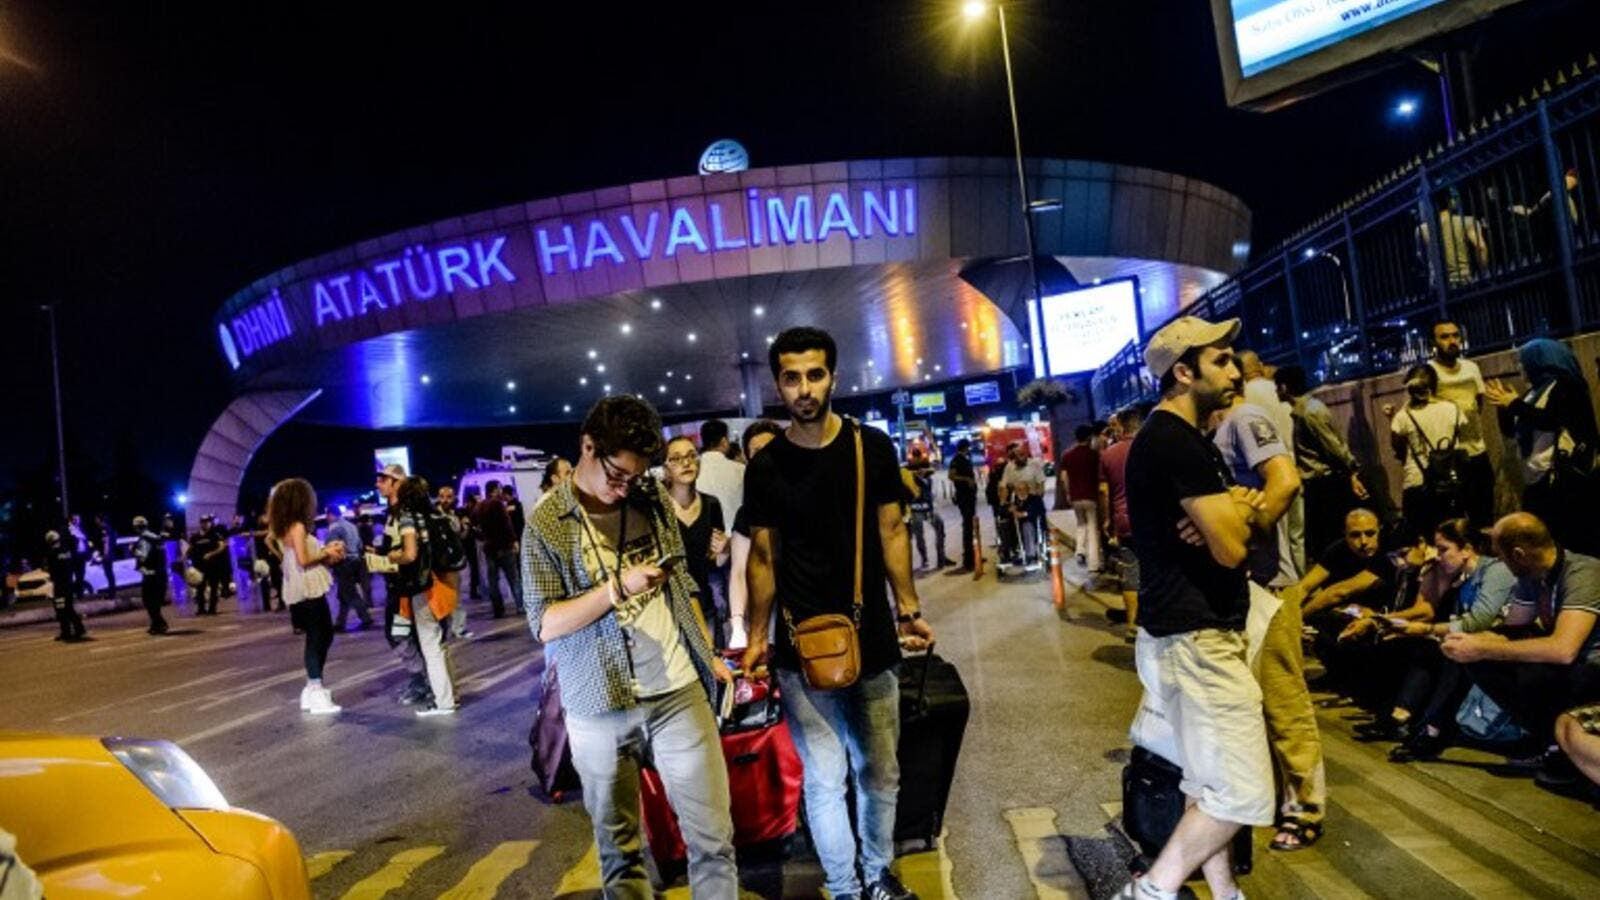 Passengers leave Ataturk airport in Istanbul on June 28, 2016 after three suicide bombers attacked. (AFP/Ozan Cose)